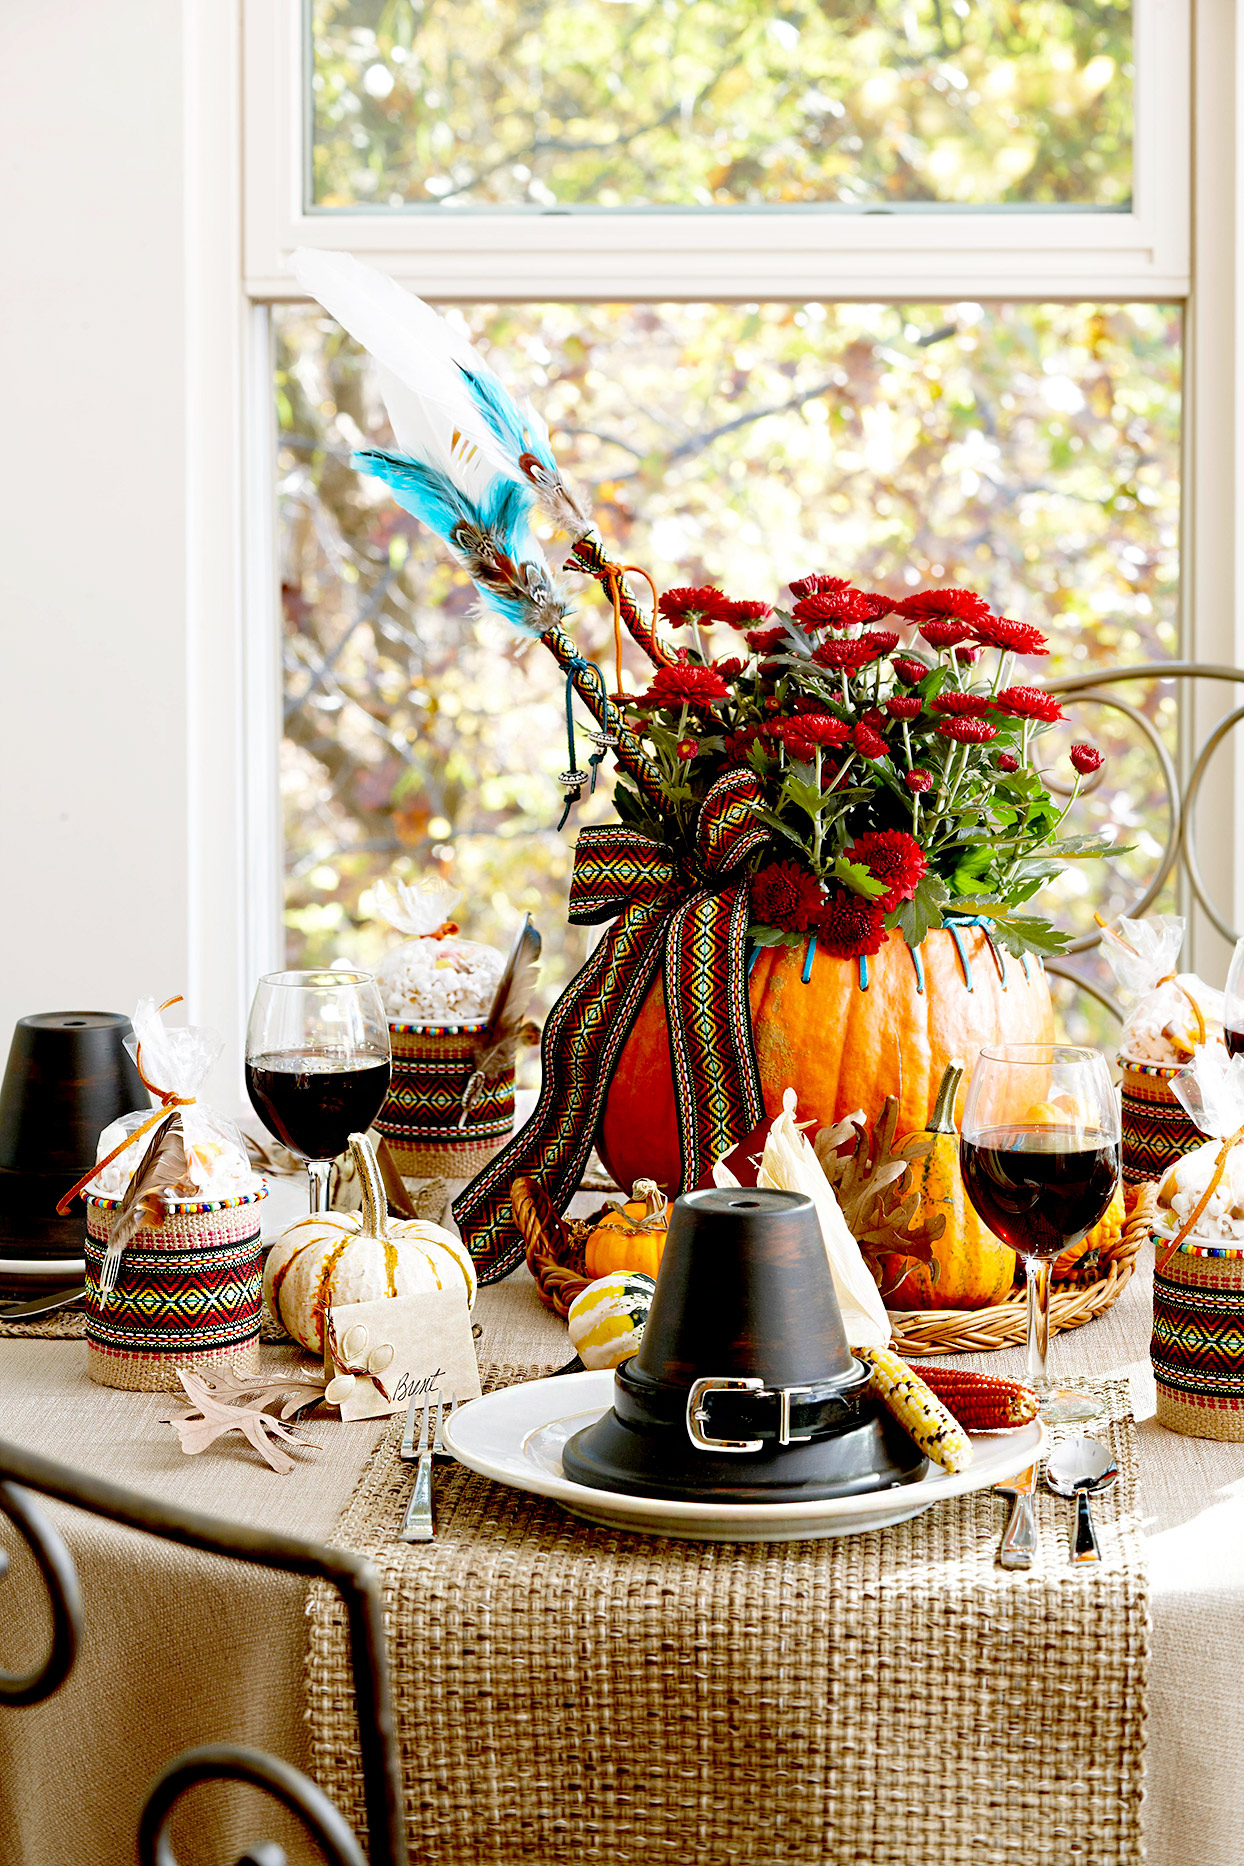 Thanksgiving table décor with pumpkin and flowers